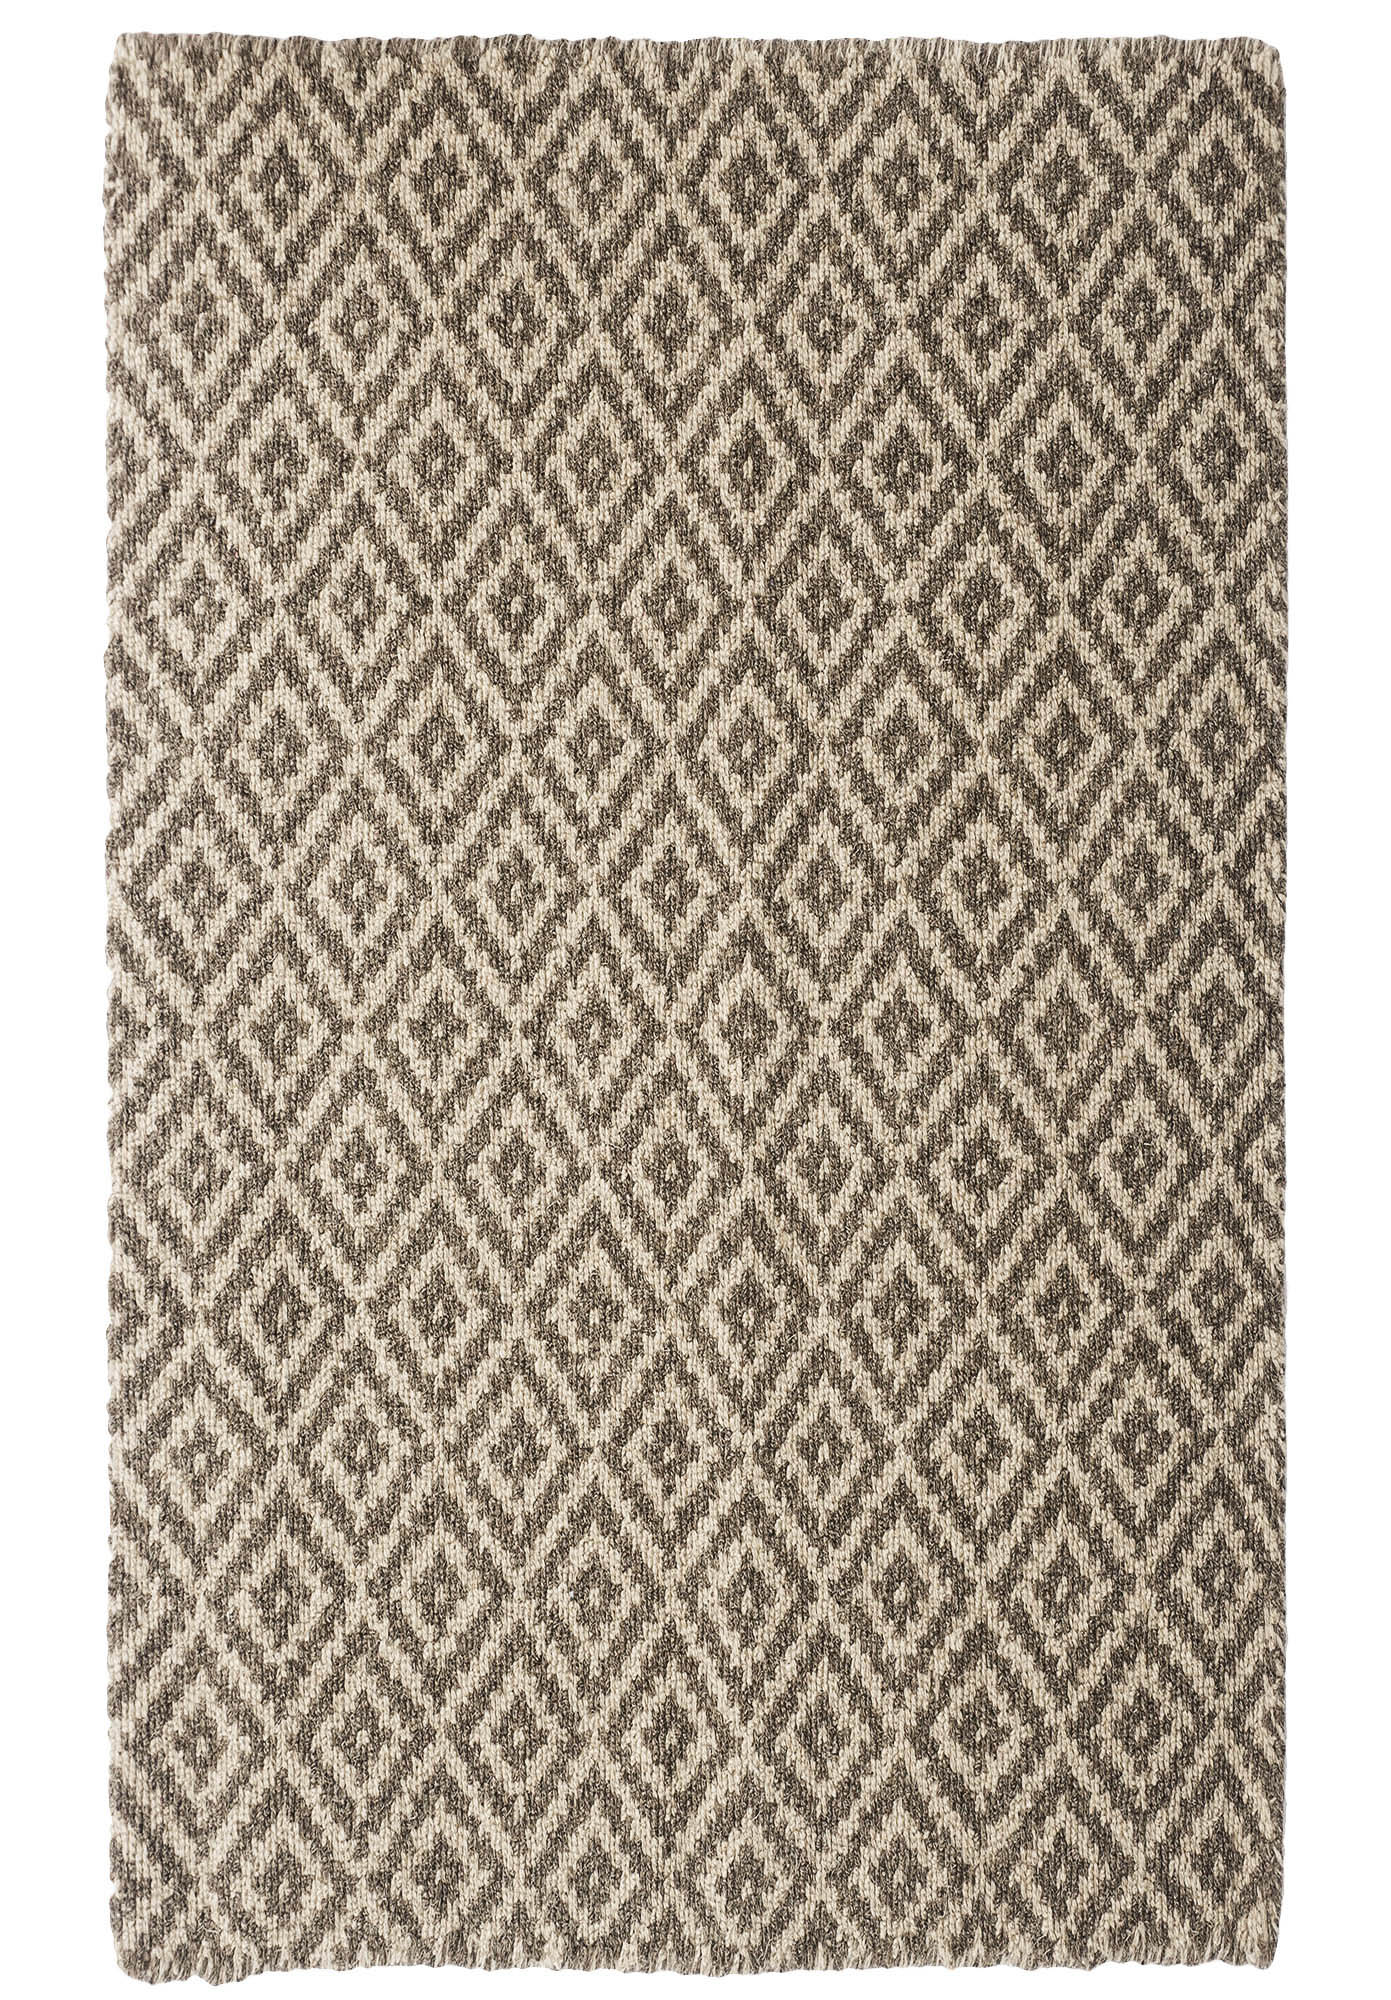 Leicester Natural Wool Loom Hooked Rug